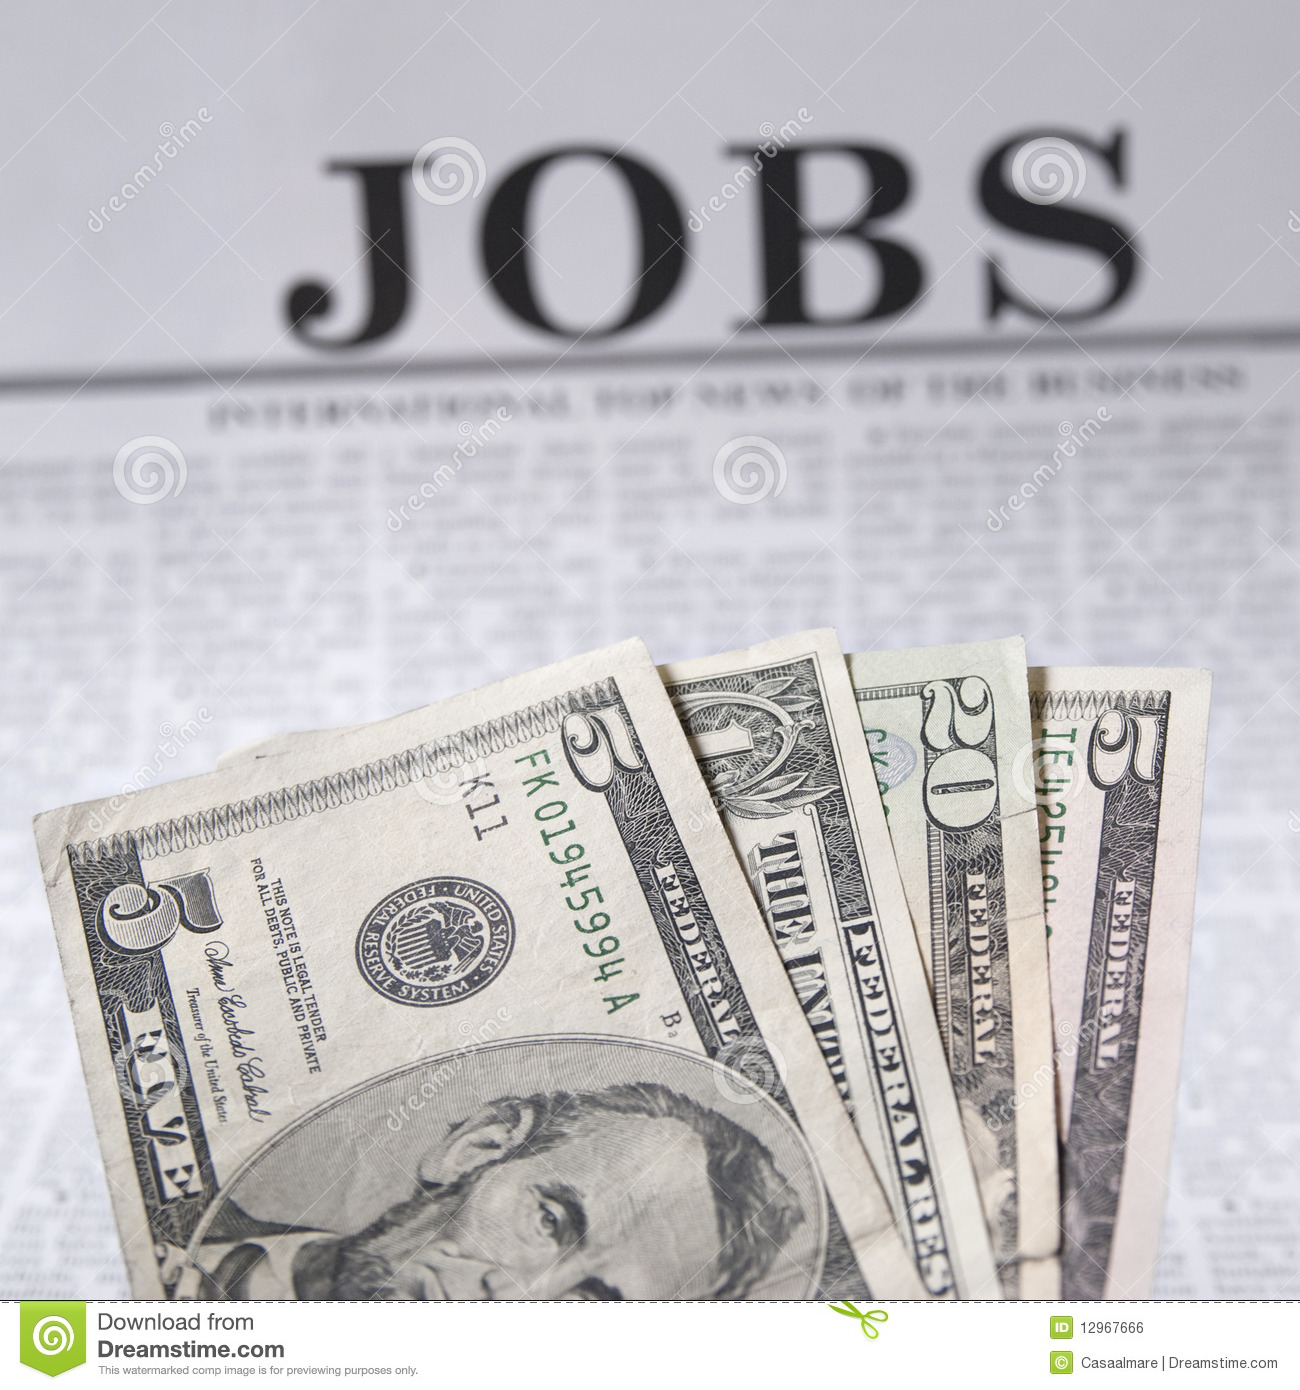 new york jobs - craigslist. CL. favorite this post Oct 9 Earn Up To $20/hr Be Your Own Boss DoorDash (new york city: staten island) img map hide this posting restore restore this posting. favorite this post Oct 9 DELIVER WITH DOORDASH EARN UP TO $20 /HR (new.